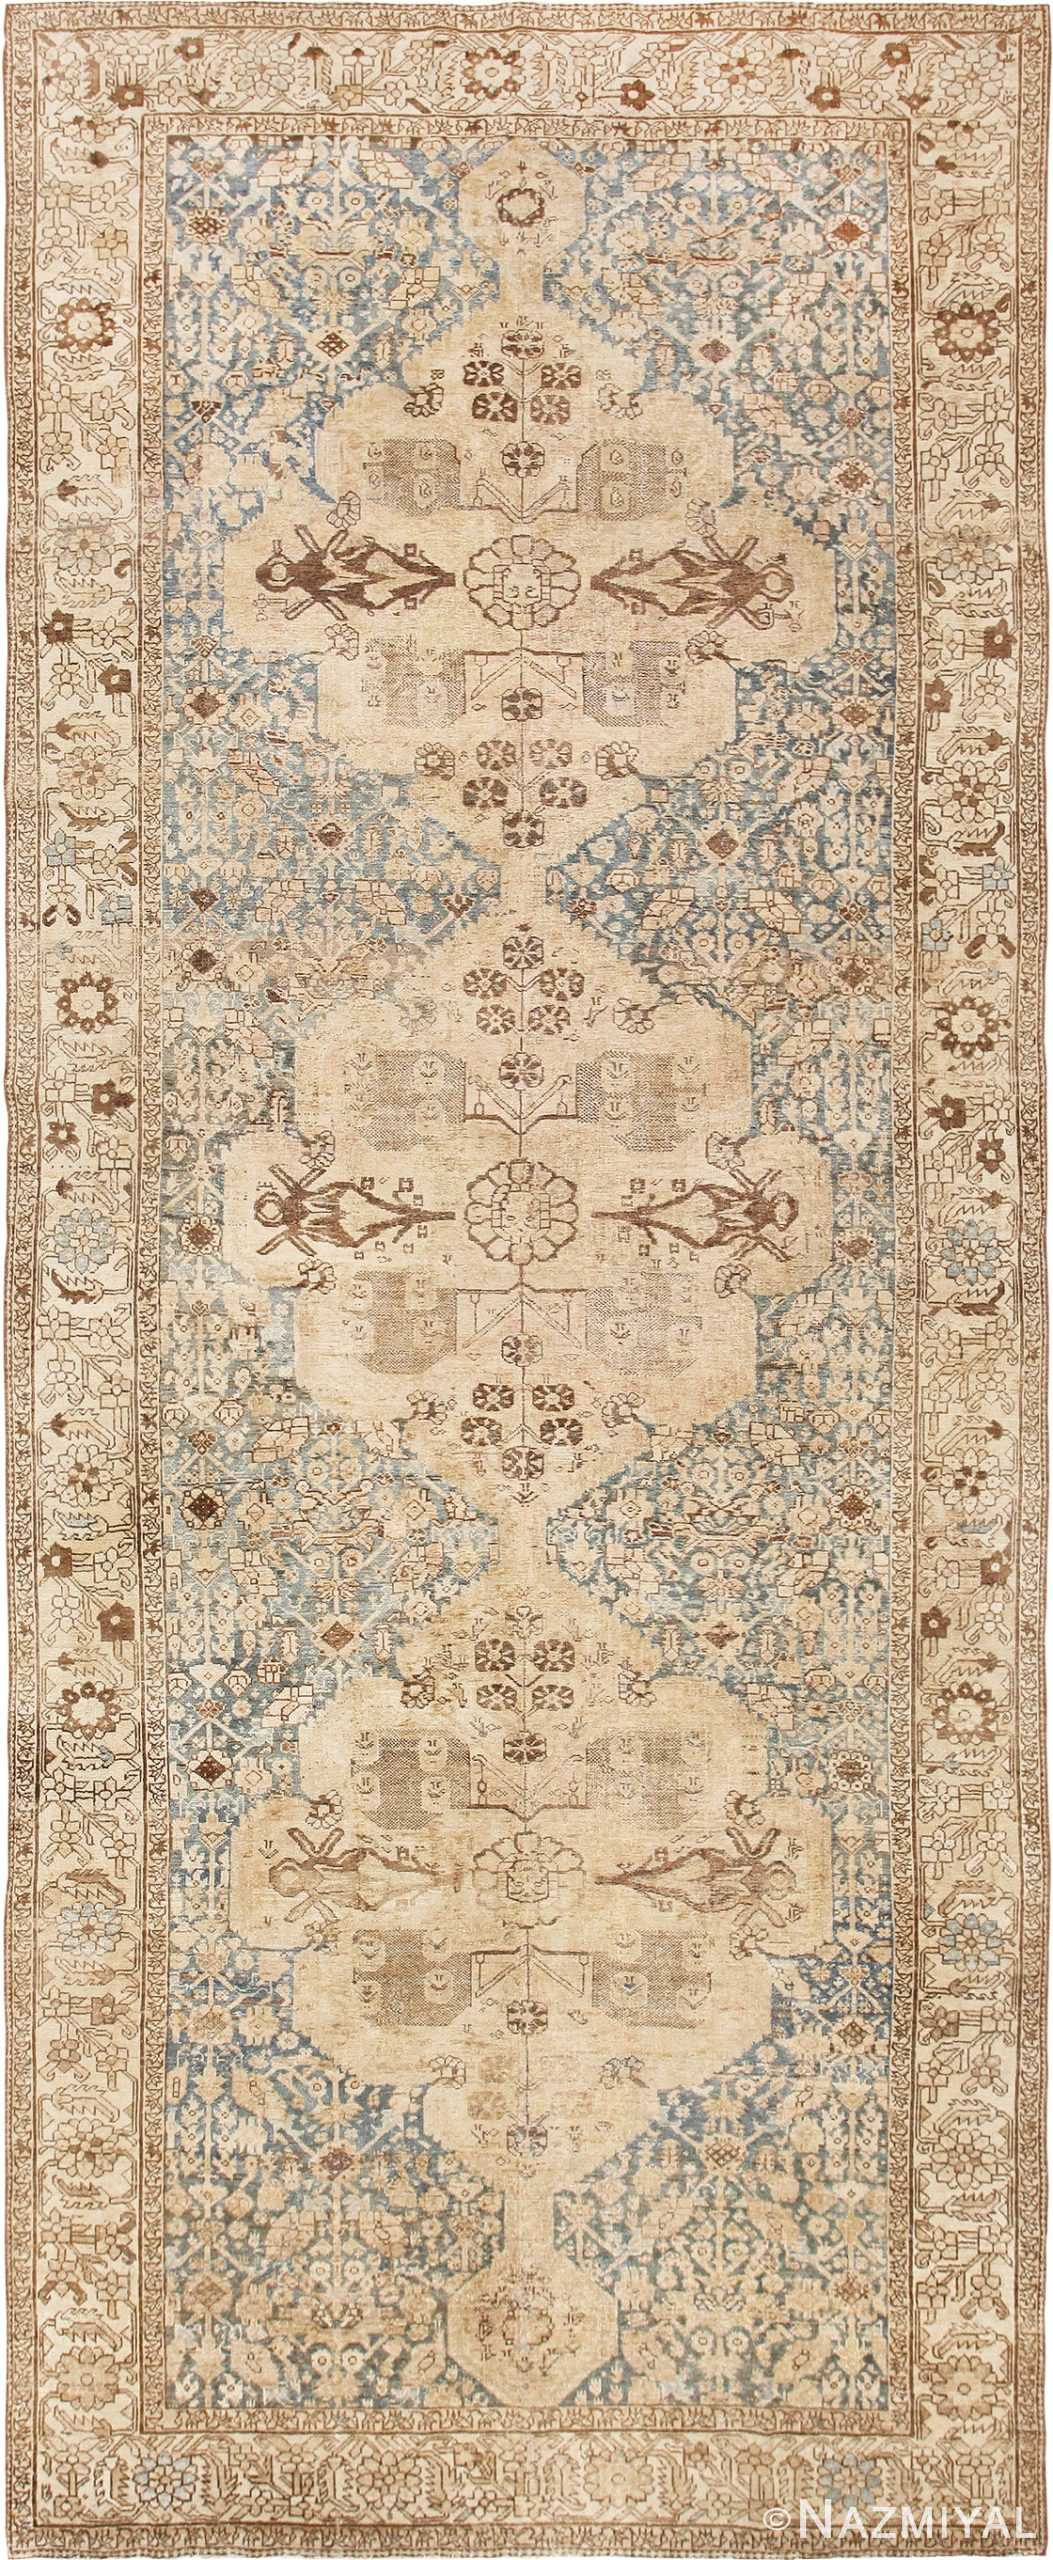 Gallery Size Shabby Chic Antique Persian Malayer Rug 50543 by Nazmiyal Antique Rugs in NYC